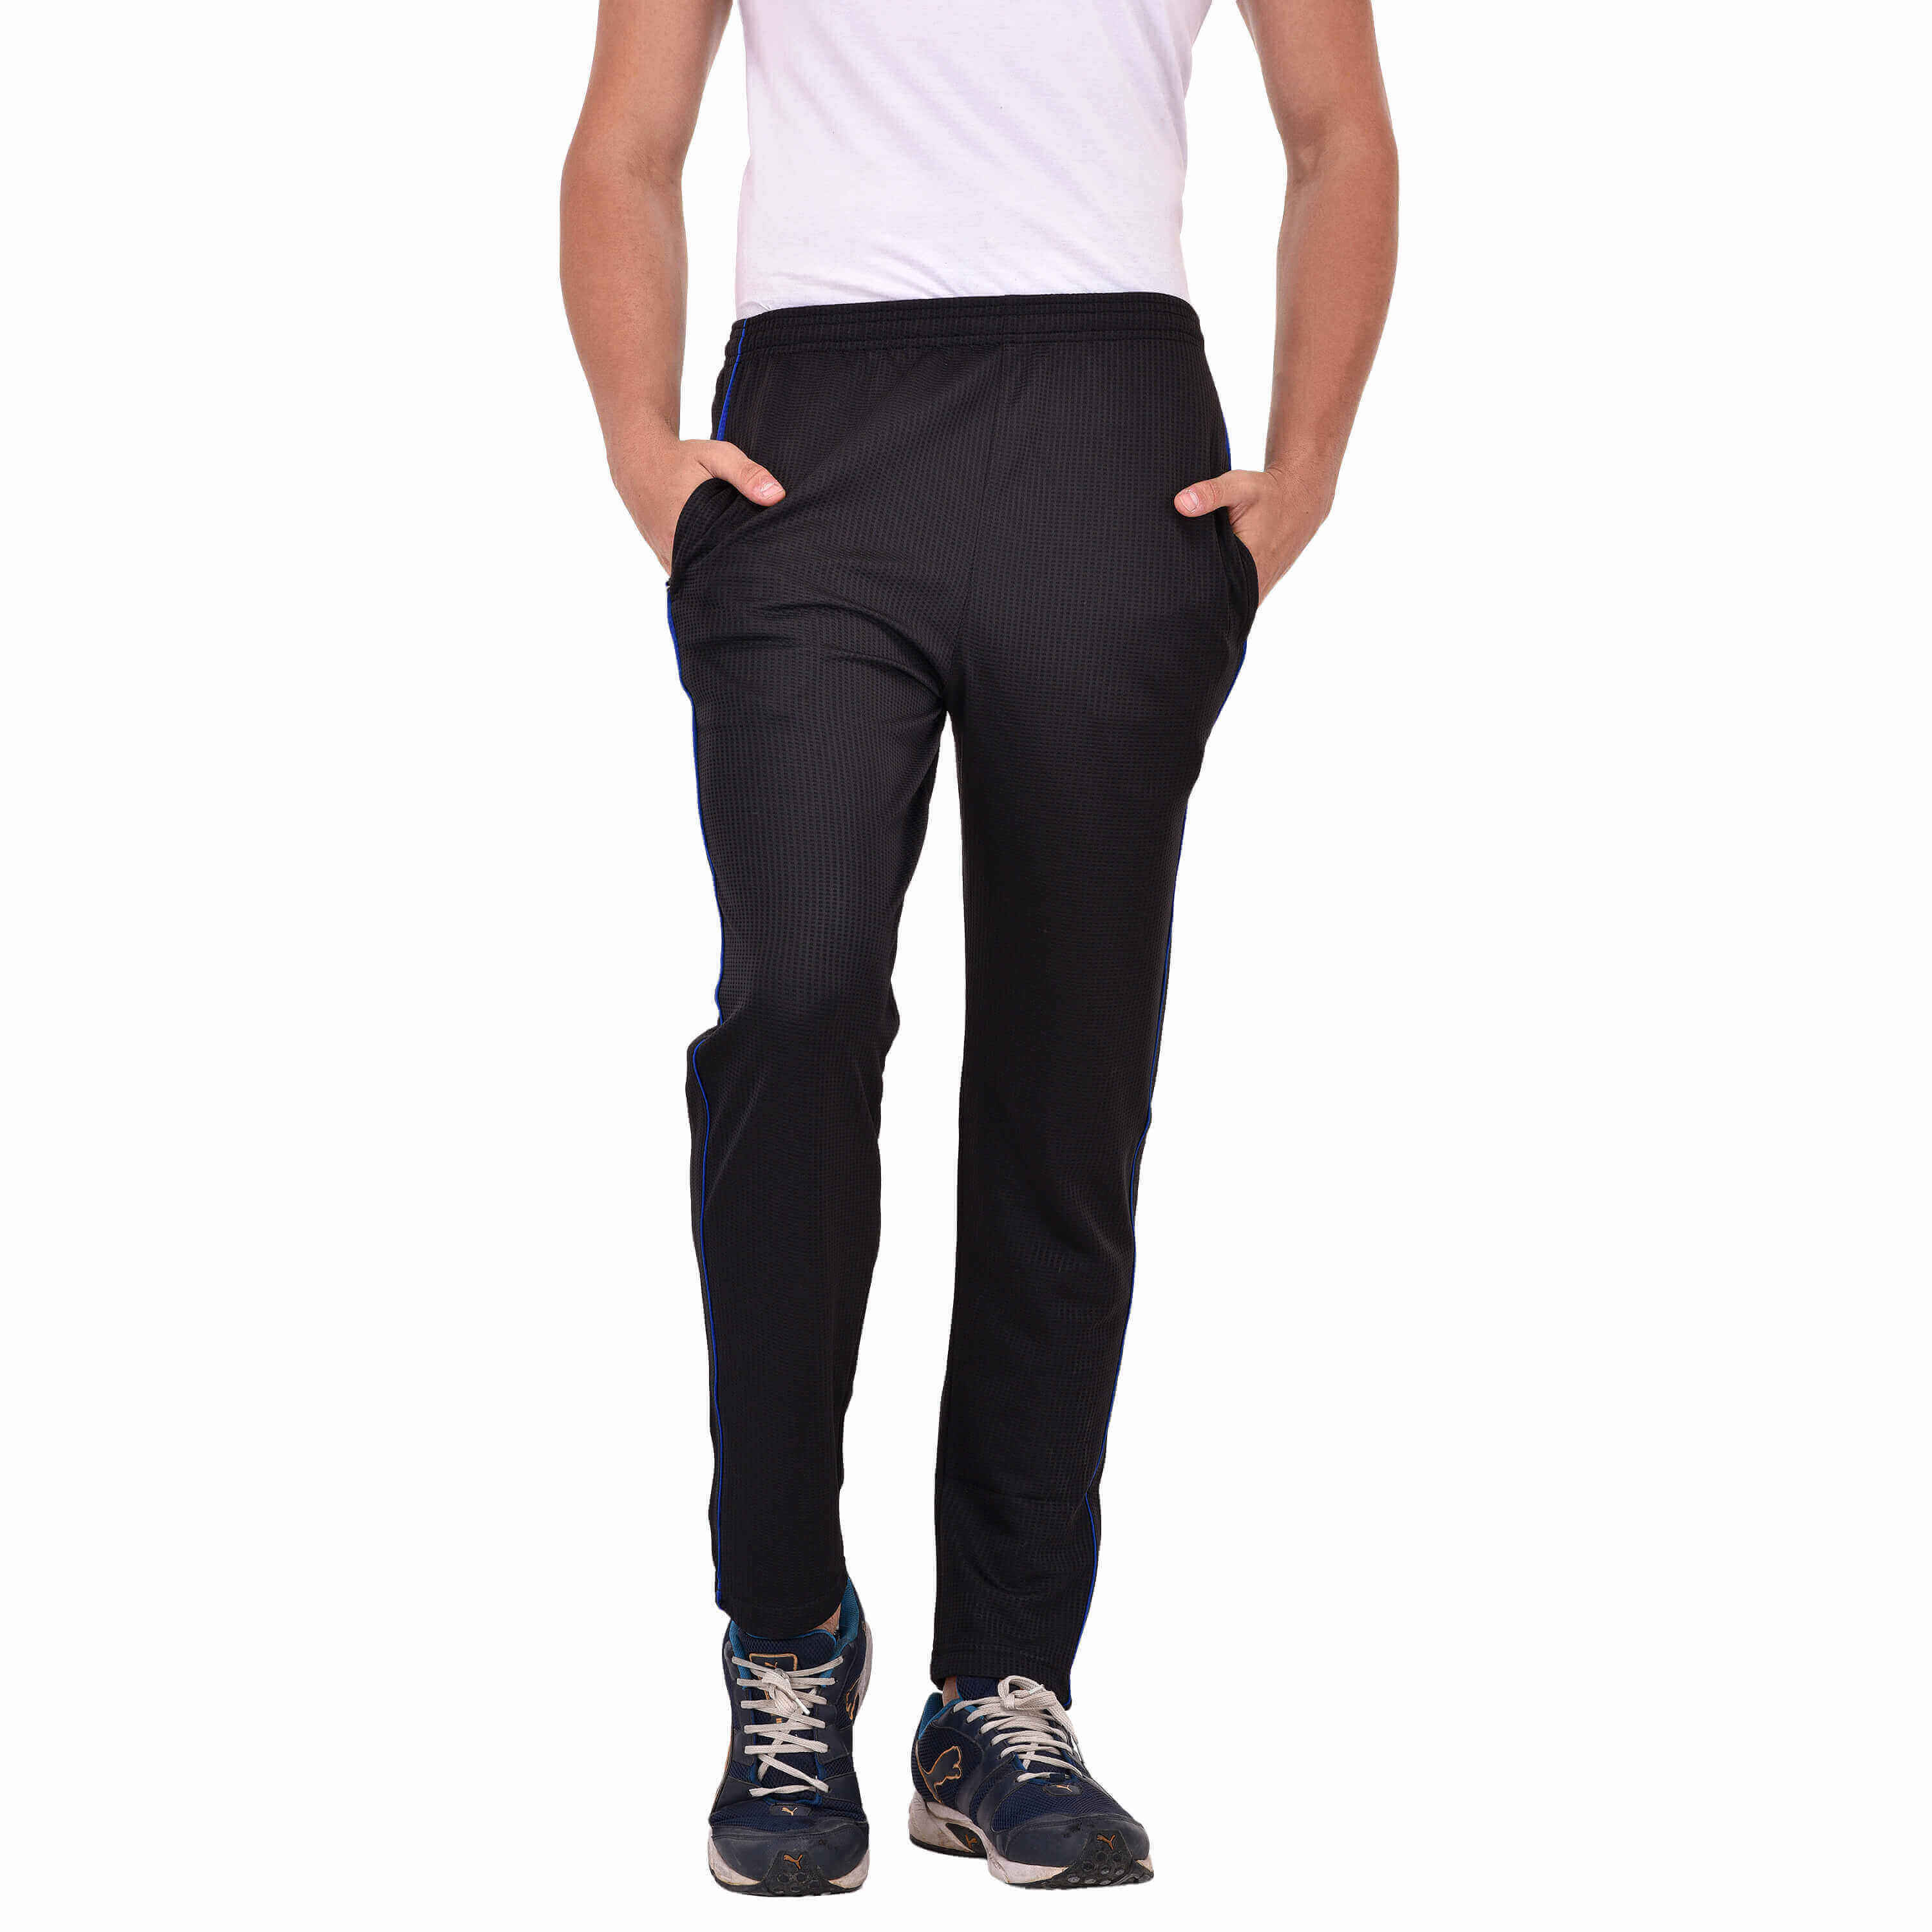 Mens Tracksuit Bottoms Manufacturers in Noida